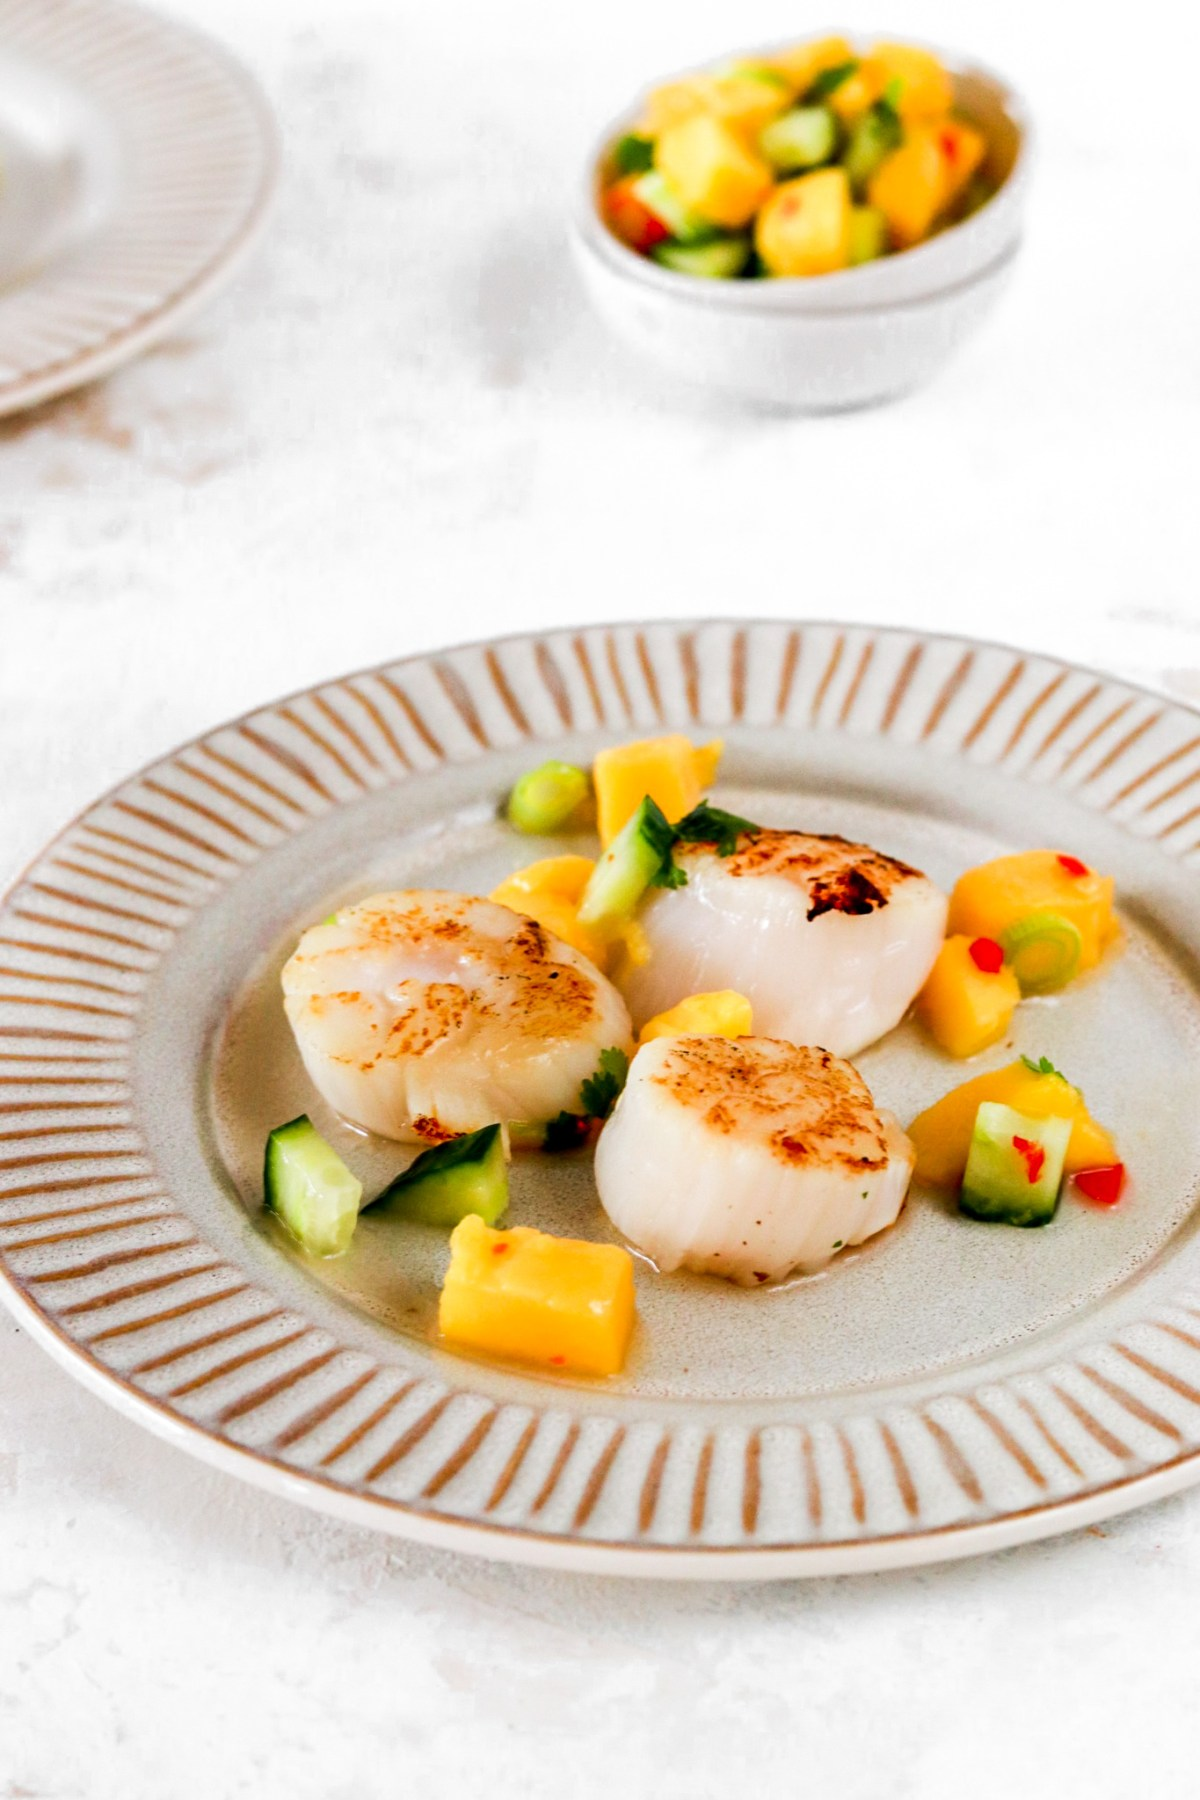 Scallops with Spicy Mango Salsa Close Up on Plate